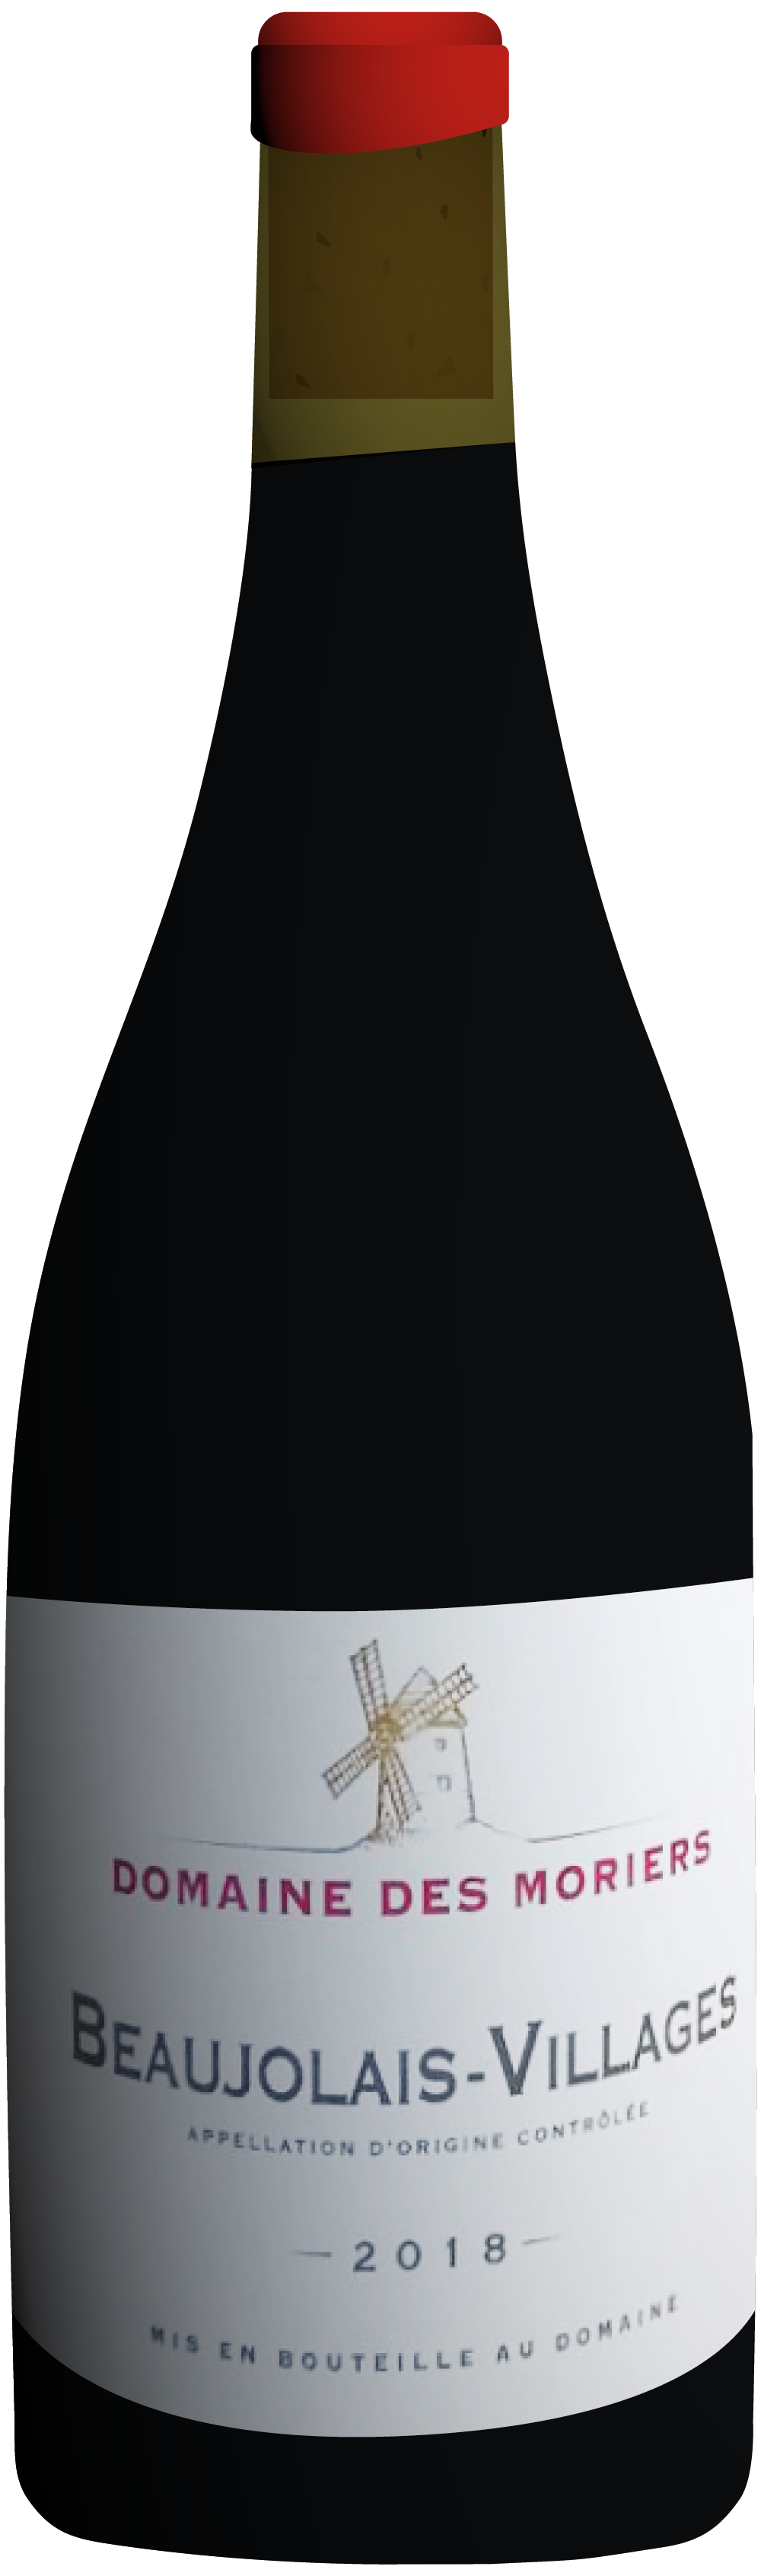 the natural wine company club september 2020 france domaine des moriers beaujolais villages